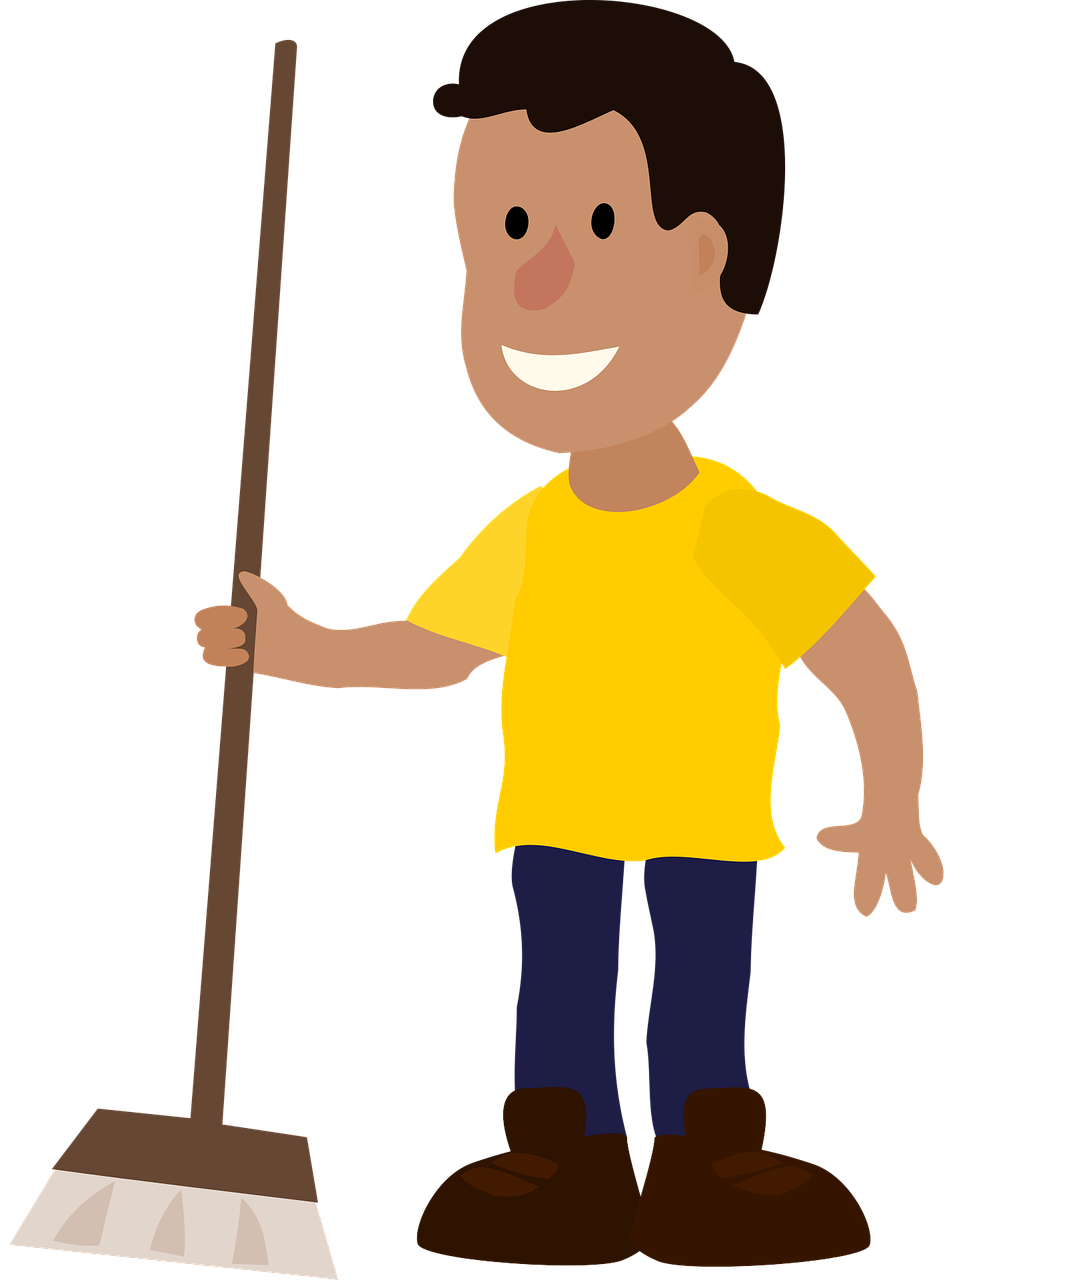 Clipart image of a man holding a broom